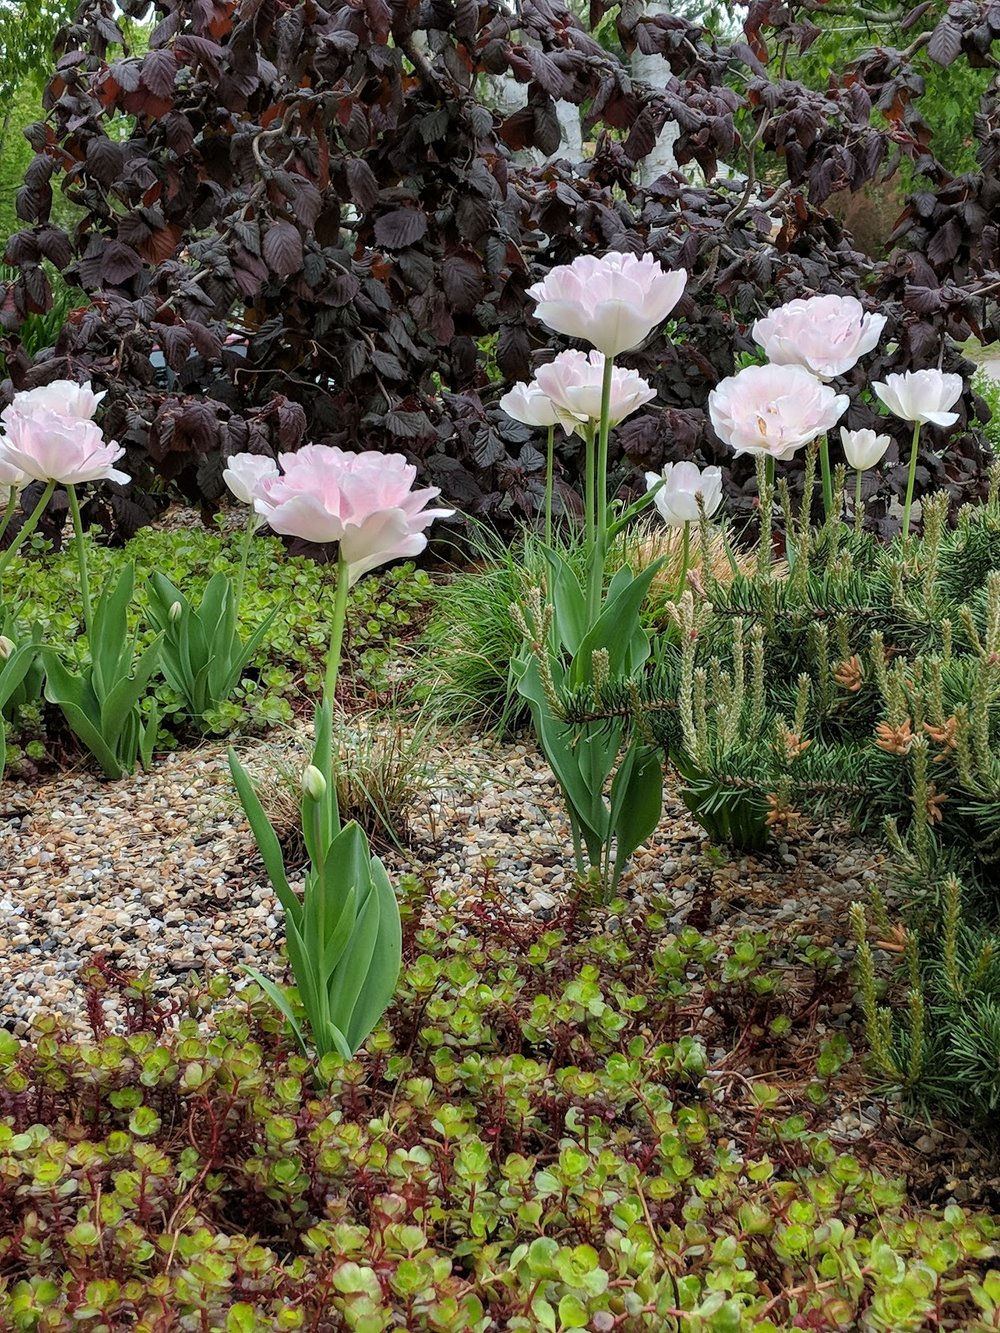 'Angelique' tulips in gravel bed with Harry Lauder Walking Stick tree